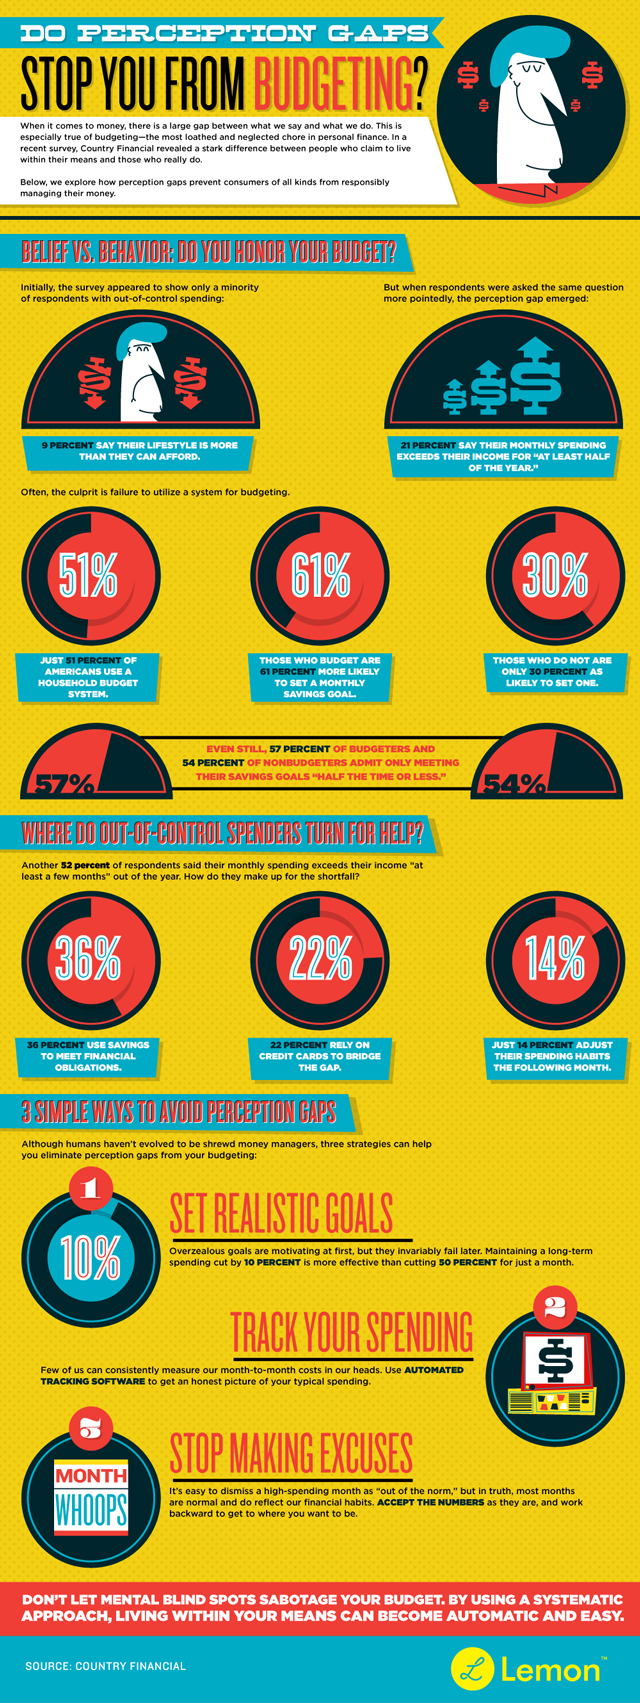 Do Perception Gaps Stop You From Budgeting? Infographic borrowed from Lemon via Business 2 Community